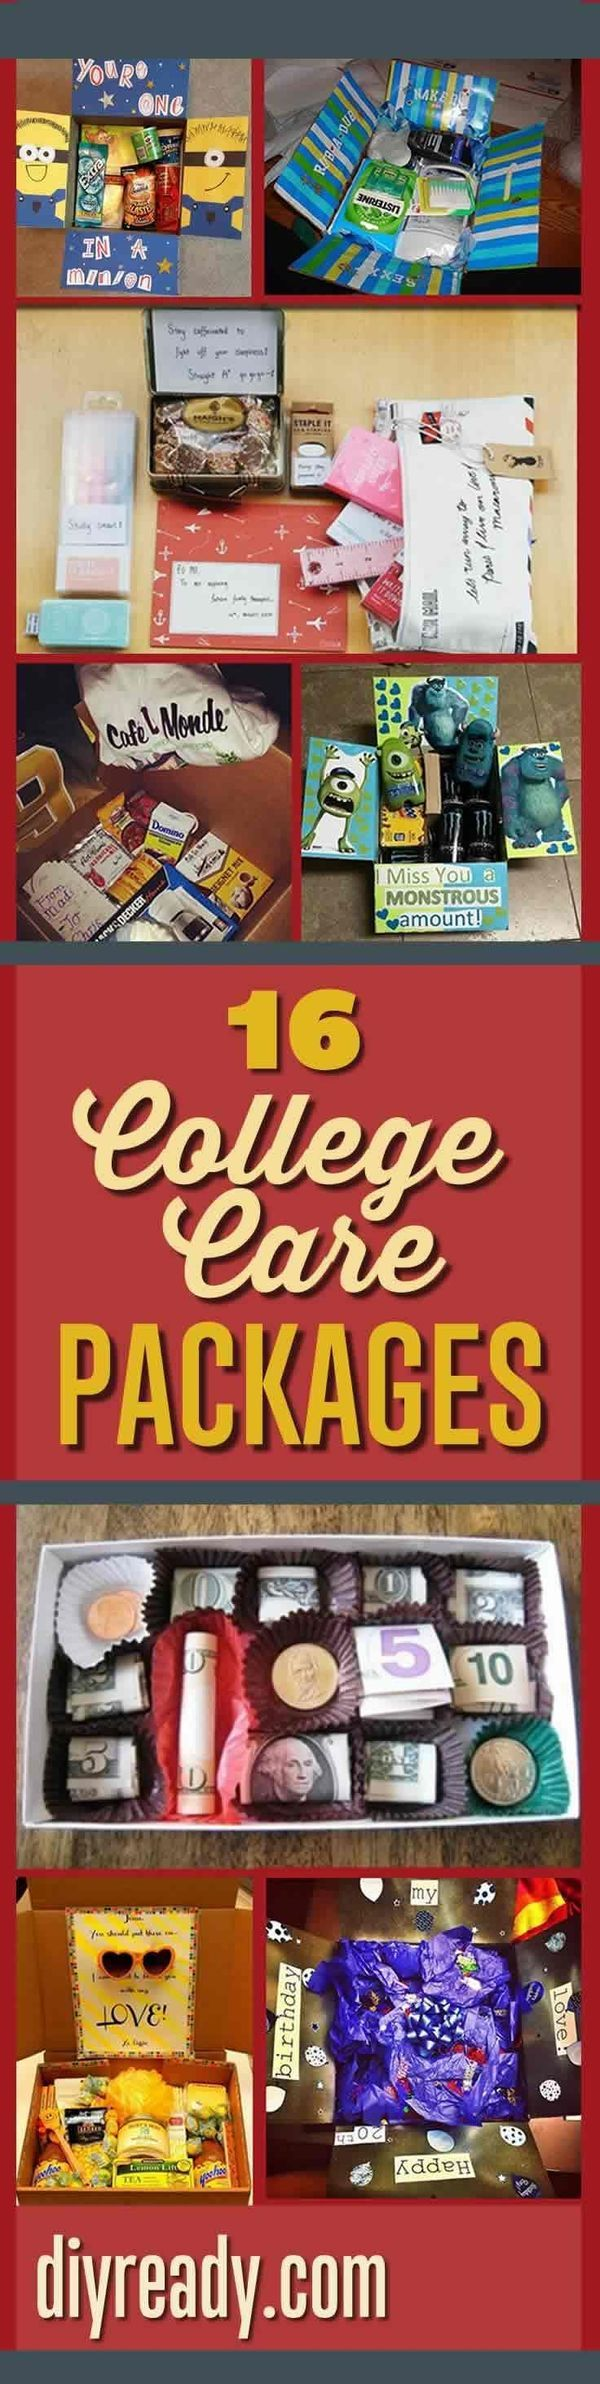 16 Cool College Care Package DIY Ideas | DIY Ready